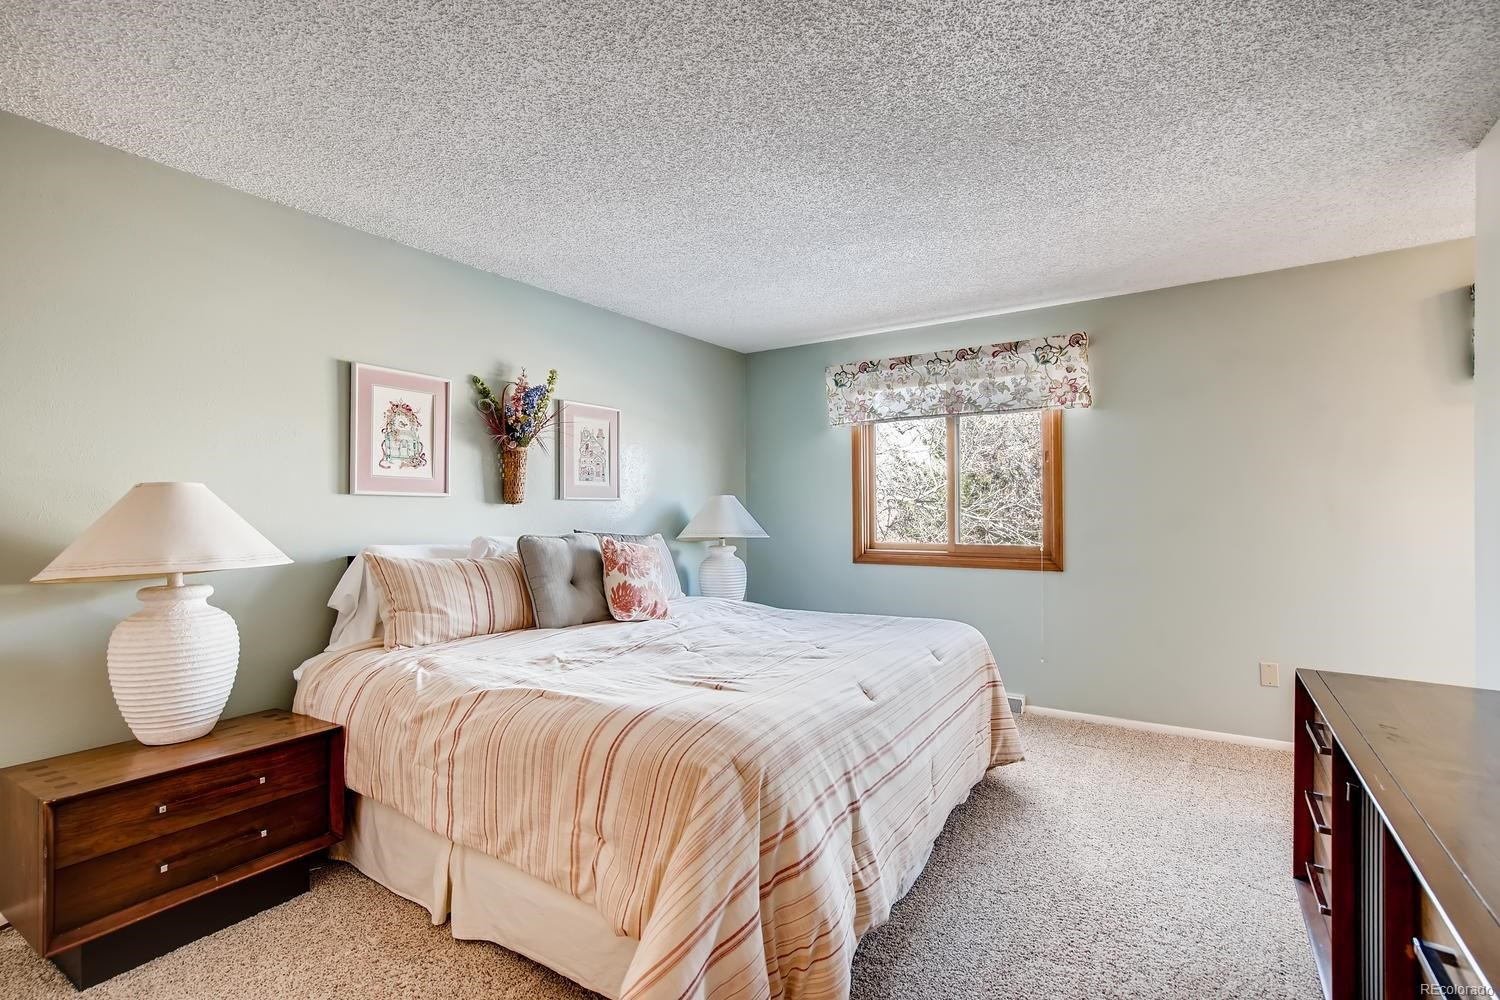 MLS# 2220629 - 15 - 4620 W 108th Place, Westminster, CO 80031